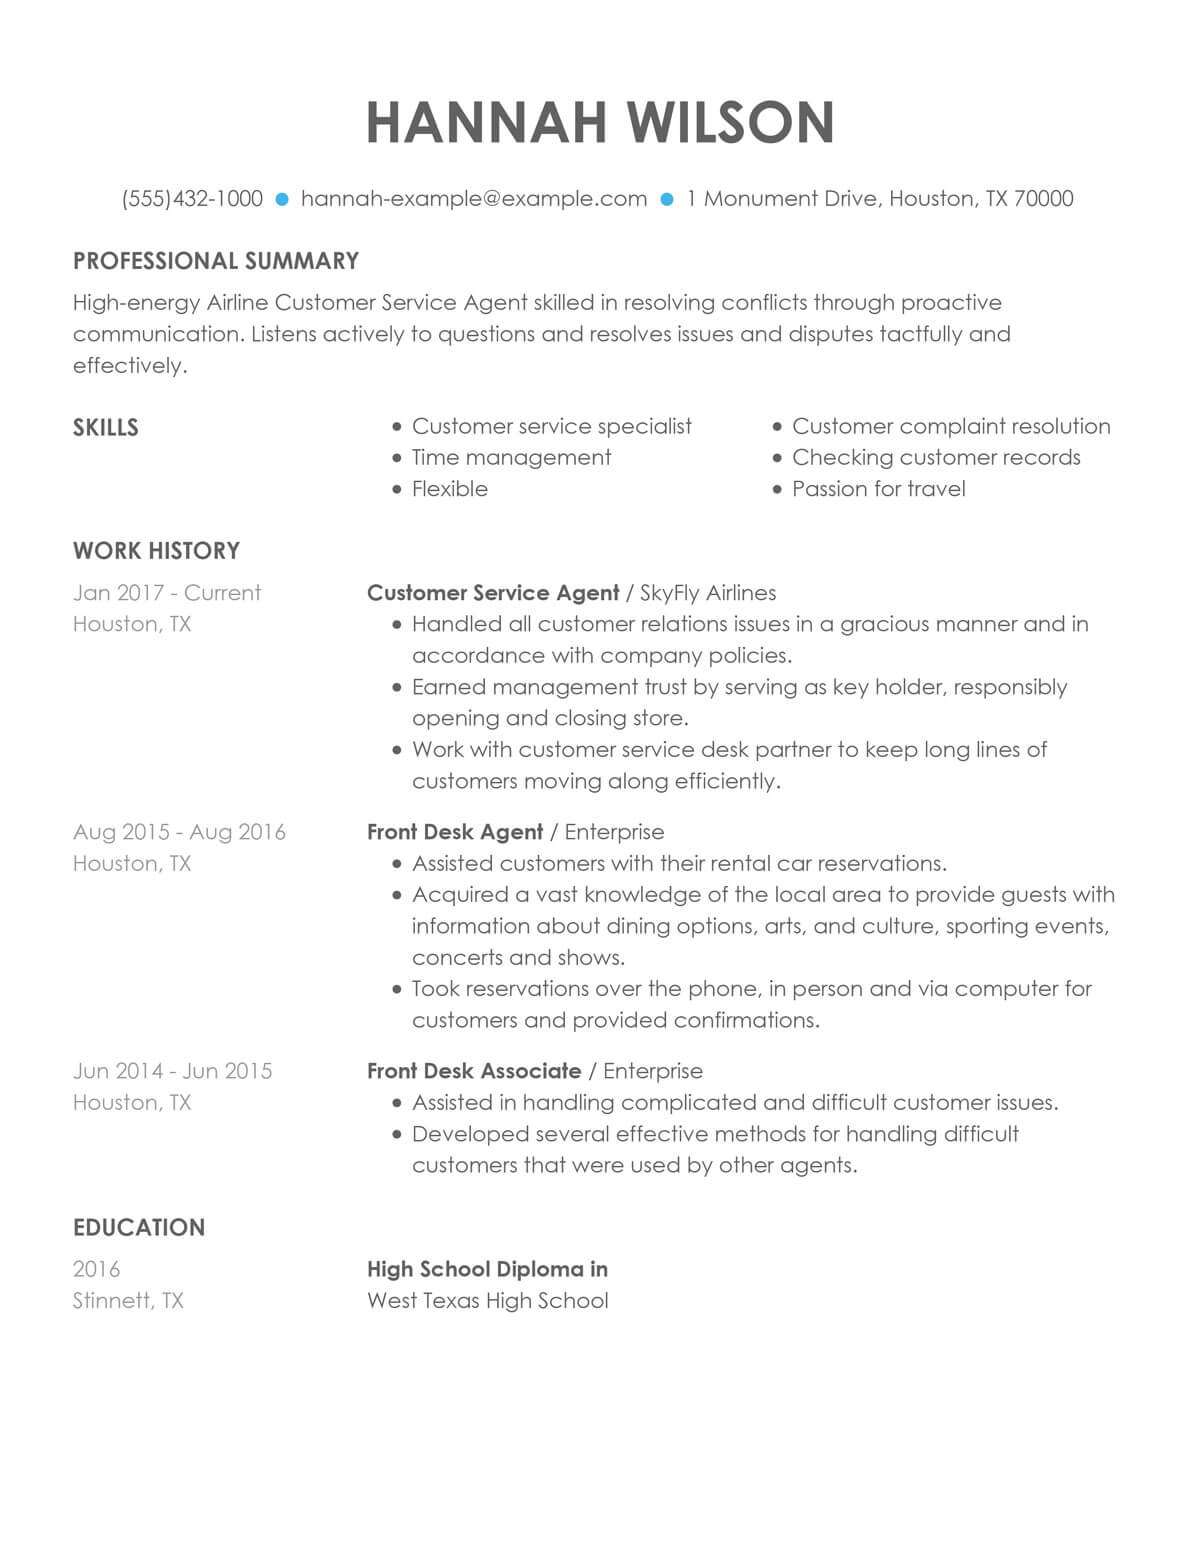 customize our customer representative resume example service examples airline agent Resume Customer Service Representative Resume Examples